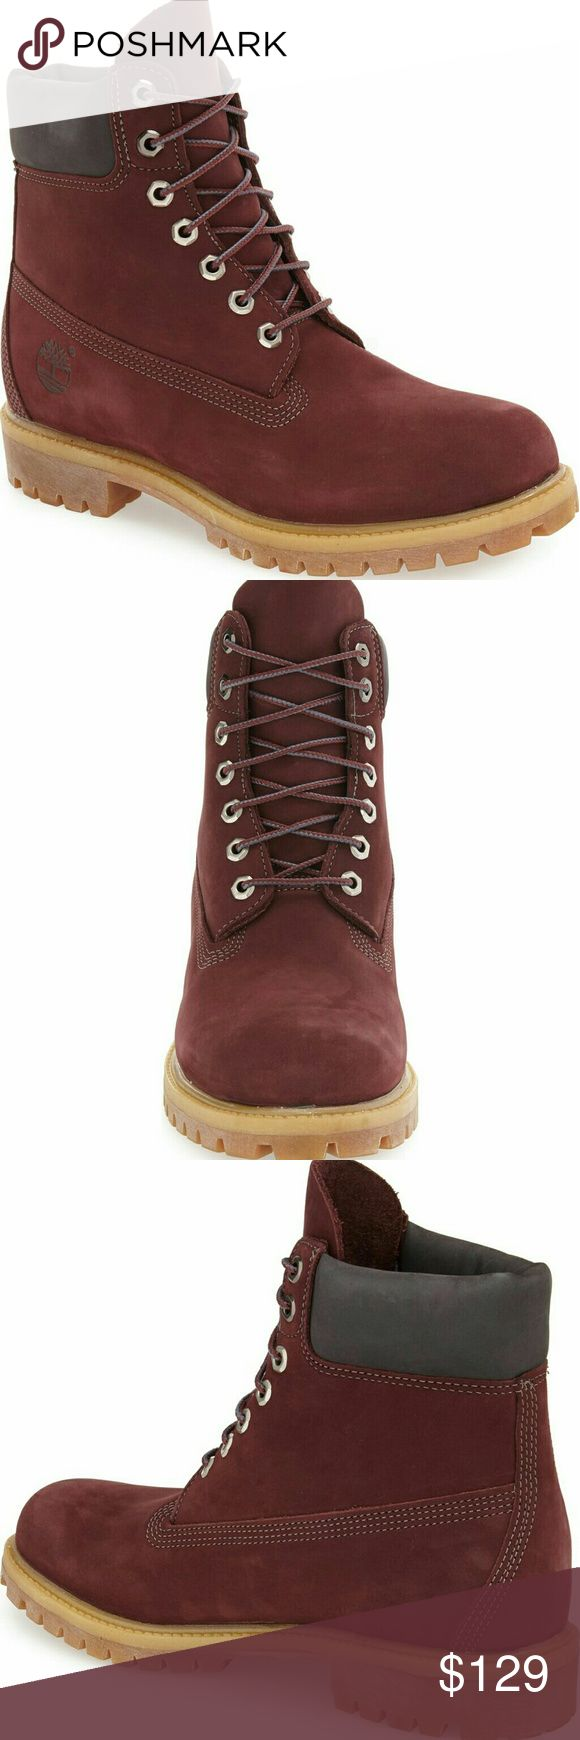 Timberland Men's boot 100% AUTHENTIC TIMBERLAND BOOTS  FROM FACTORY New with box Timberland Shoes Boots